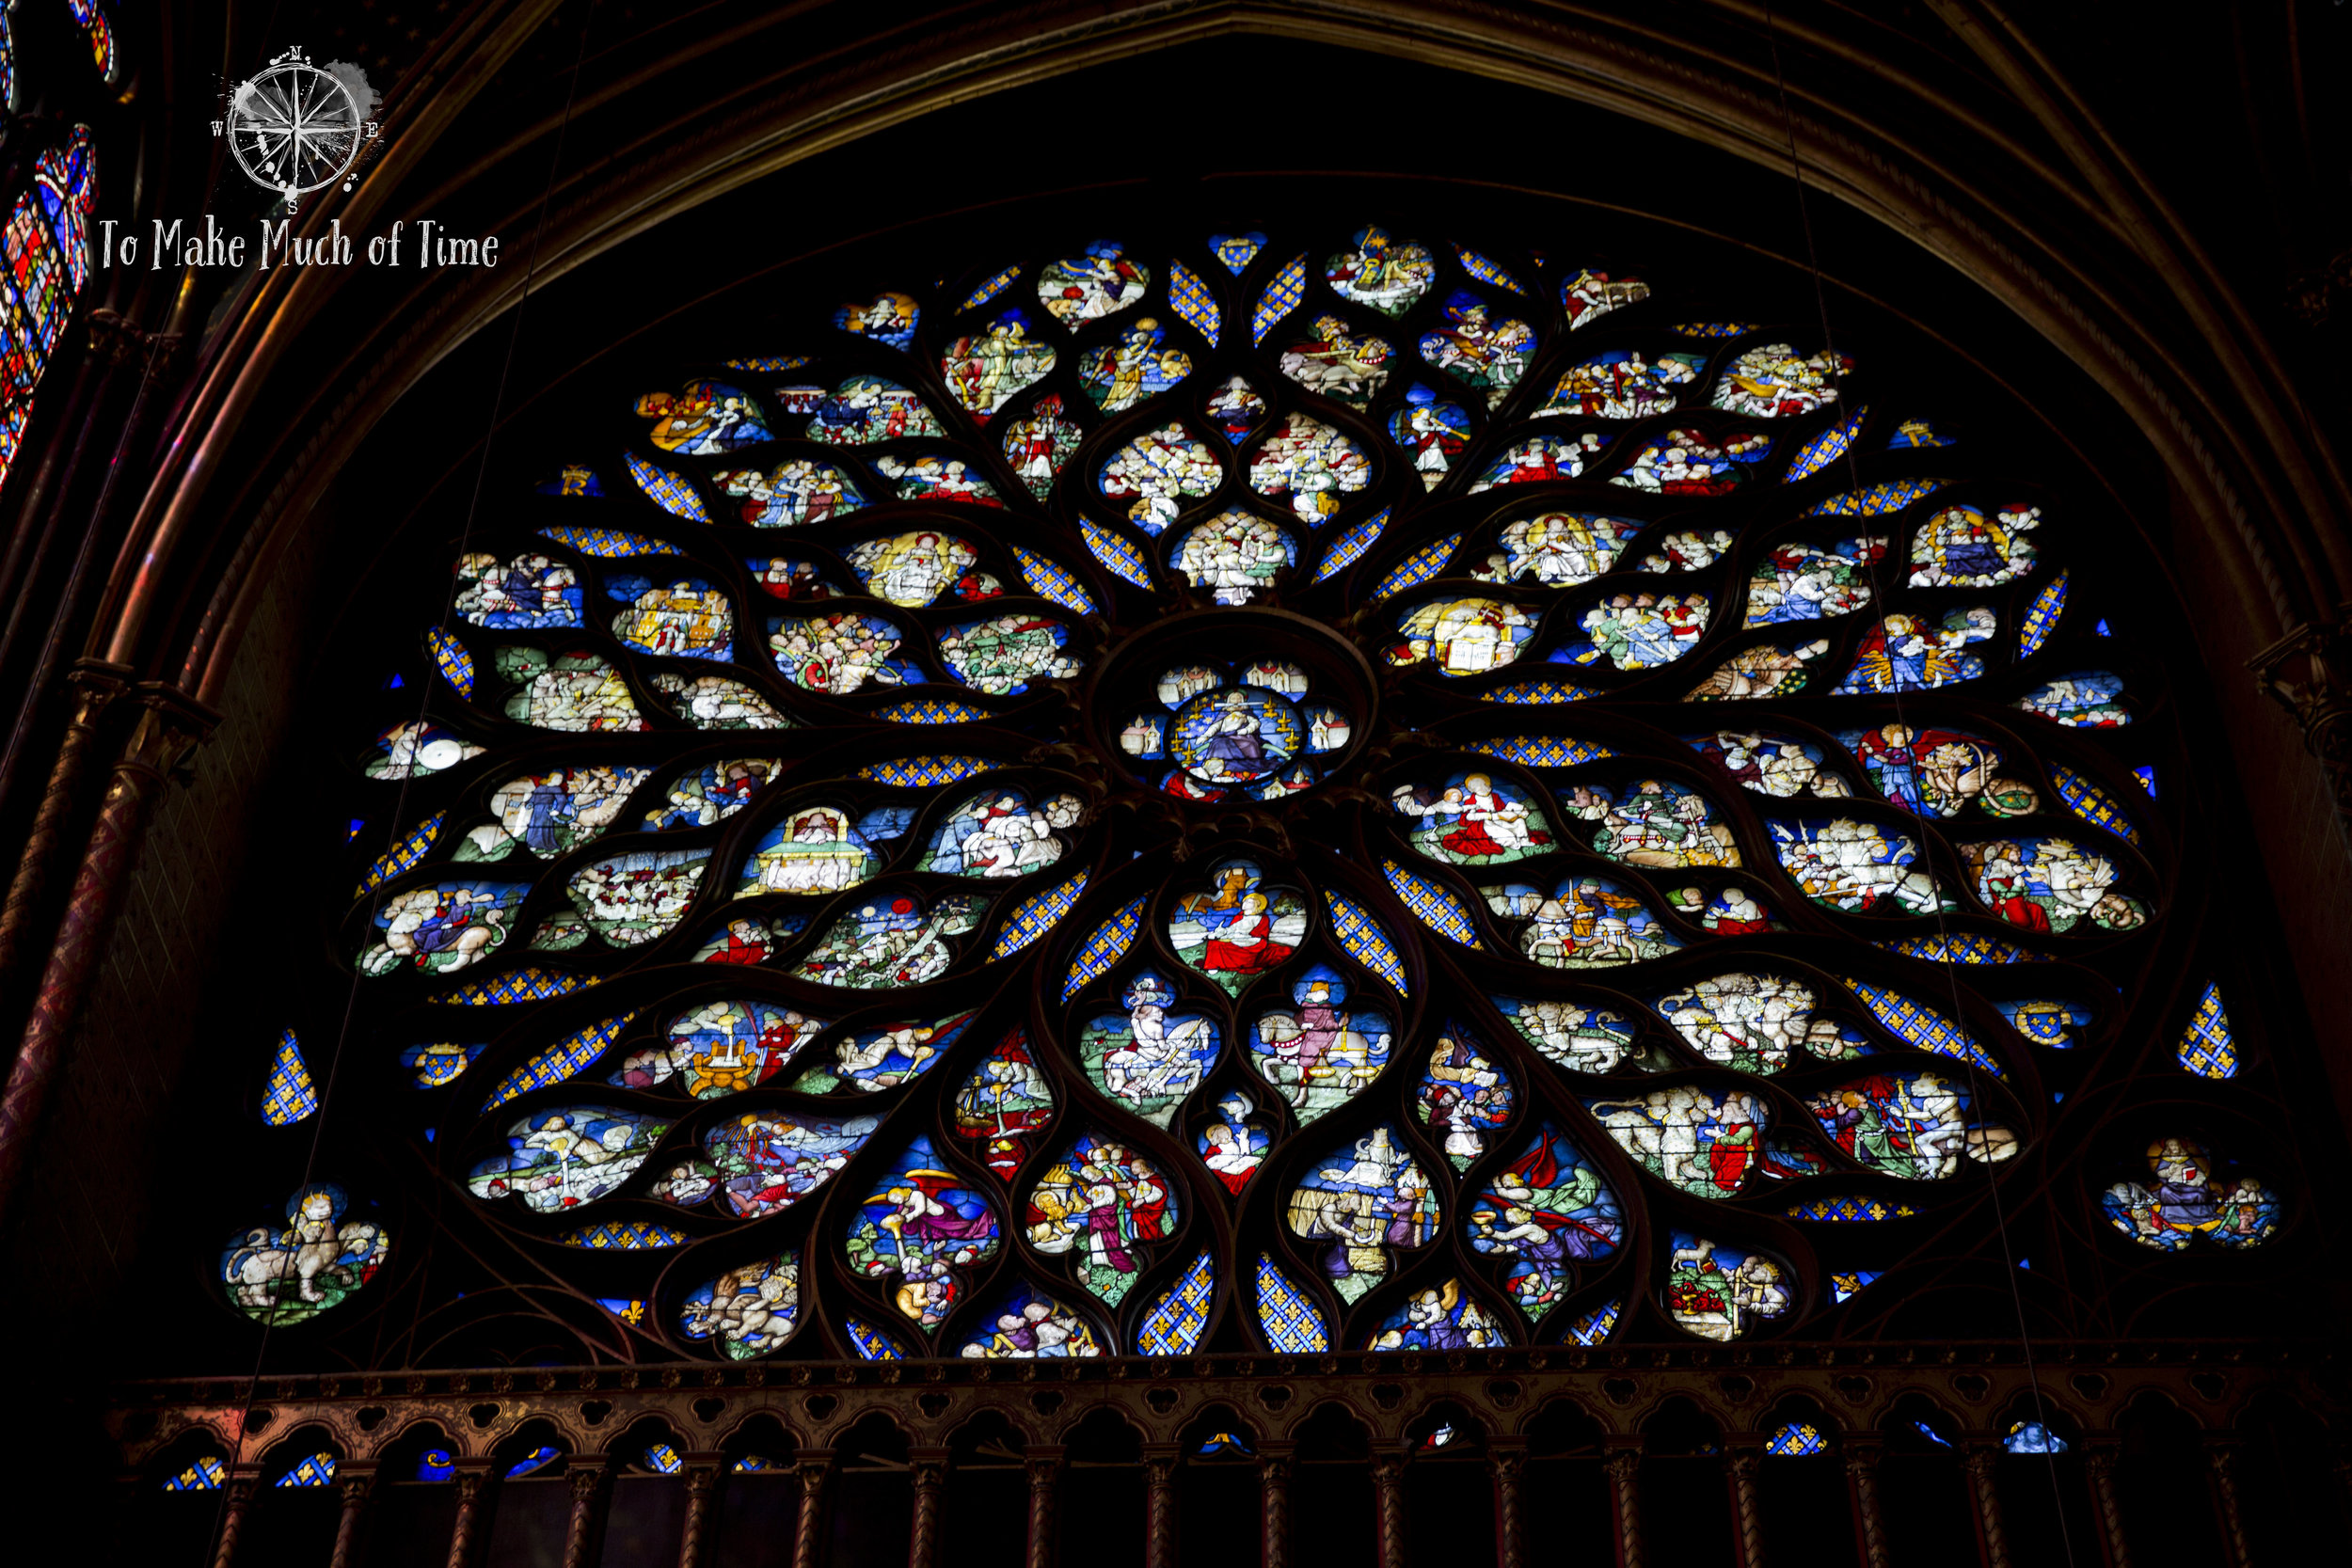 This gorgeous (and massive) rose window is on the front face of Saint-Chapelle.